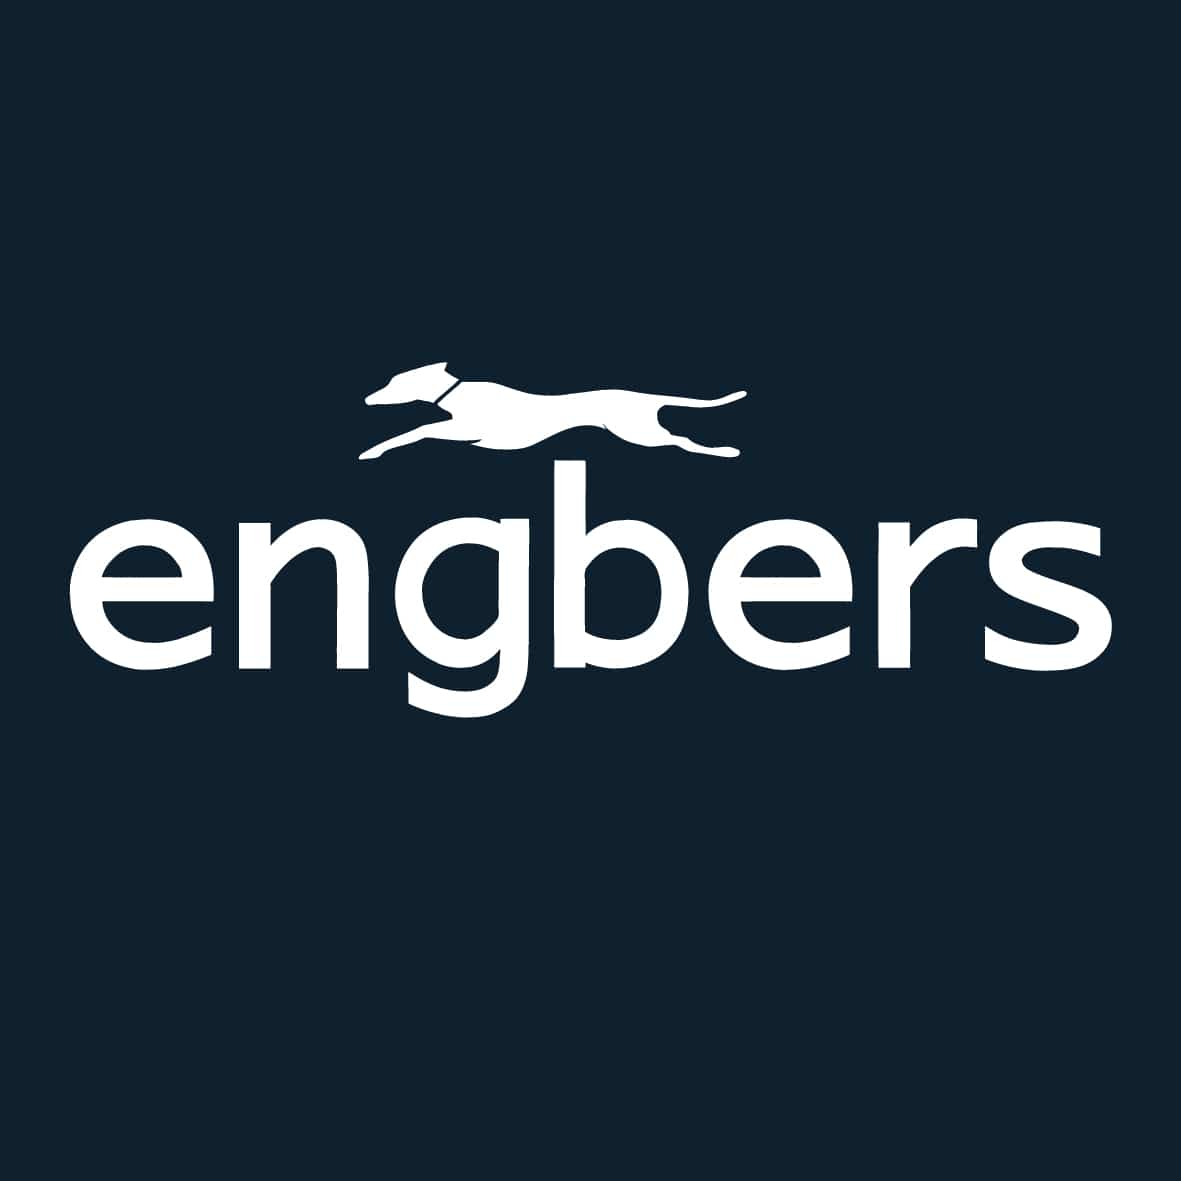 engbers – Coming Soon!